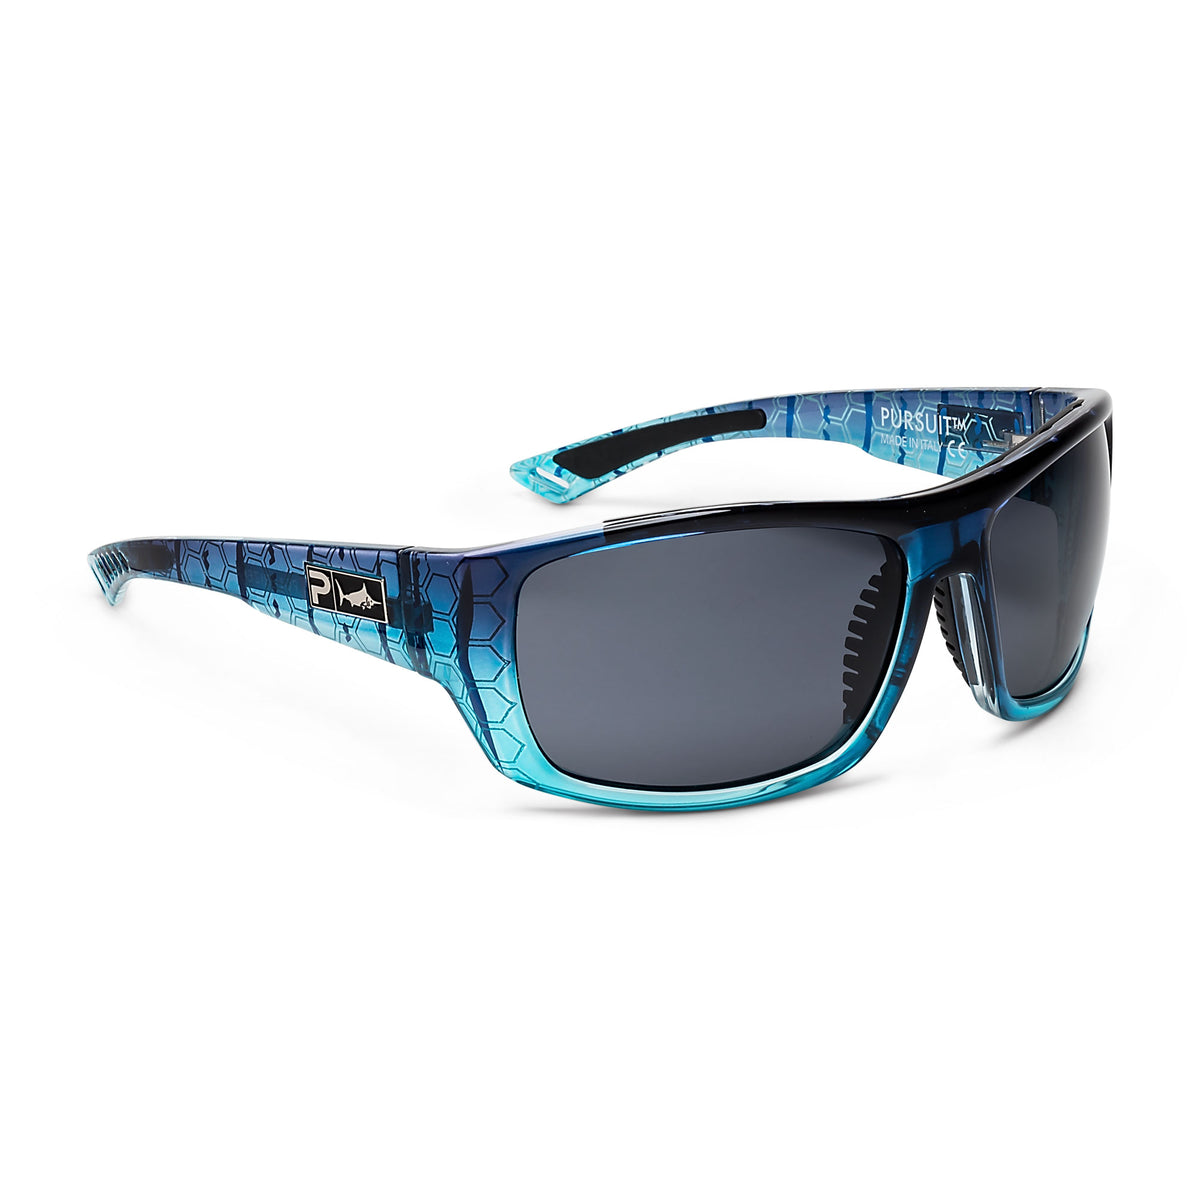 Pursuit - Polarized Polycarbonate Lens Big Image - 1